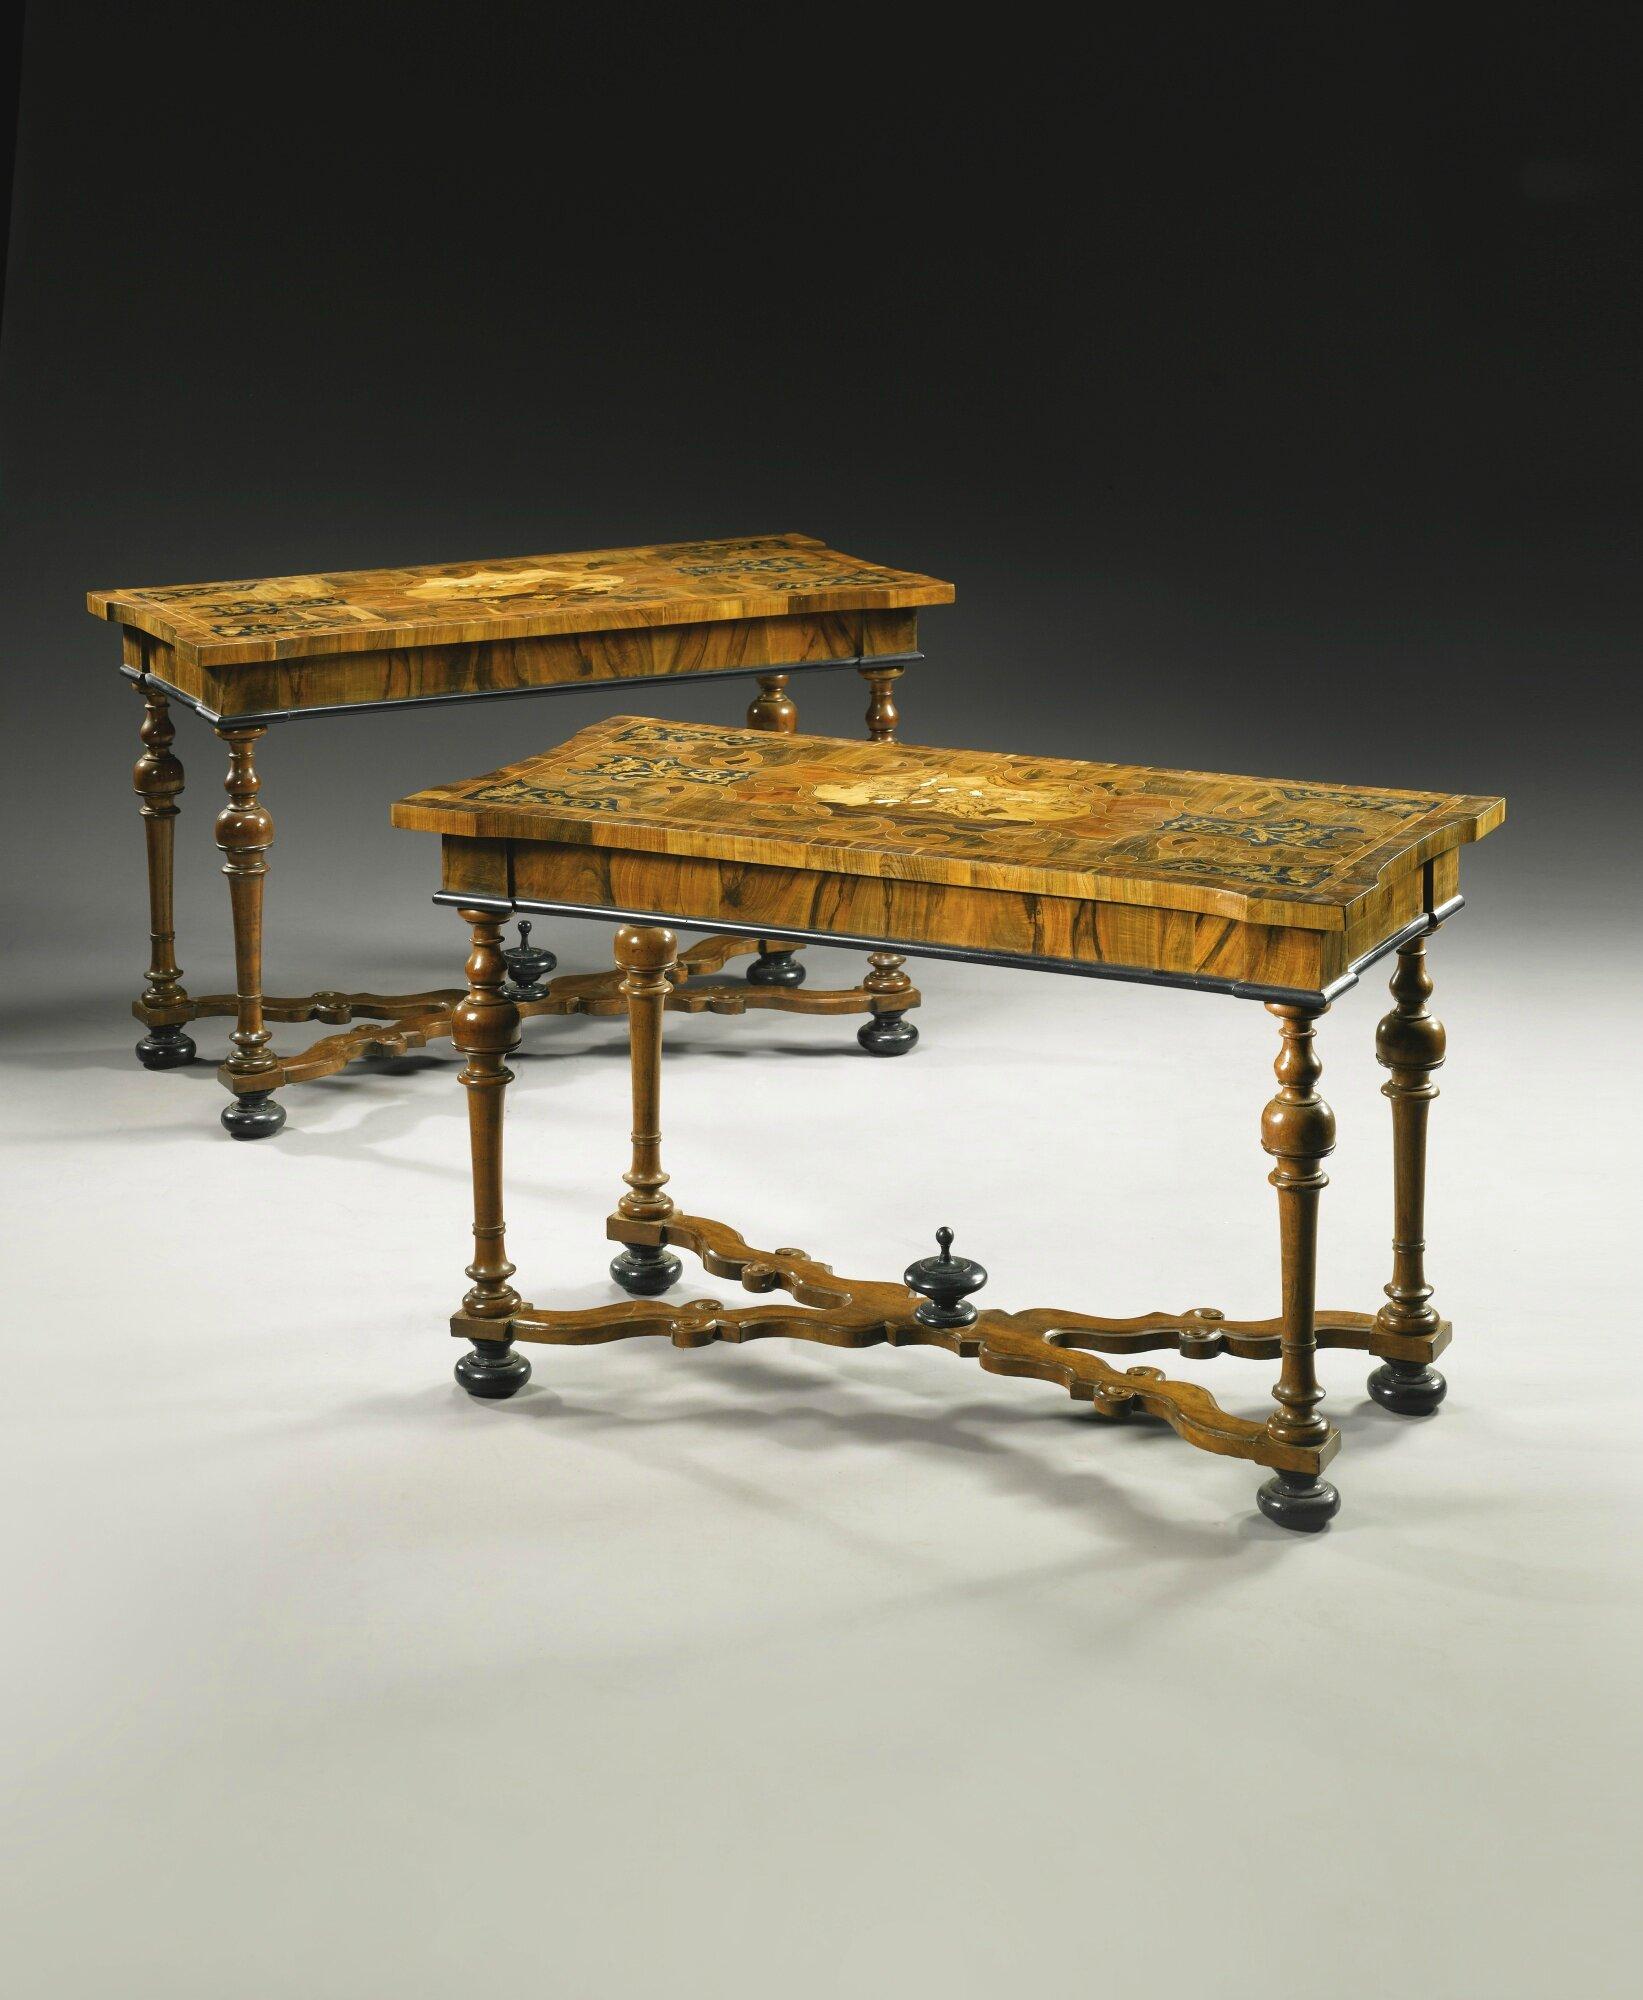 Charmant A Pair Of Italian Ivory, Mother Of Pearl, Pewter And Fruitwood Inlaid  Walnut, Ebony Marquetry And Parquetry Console Tables